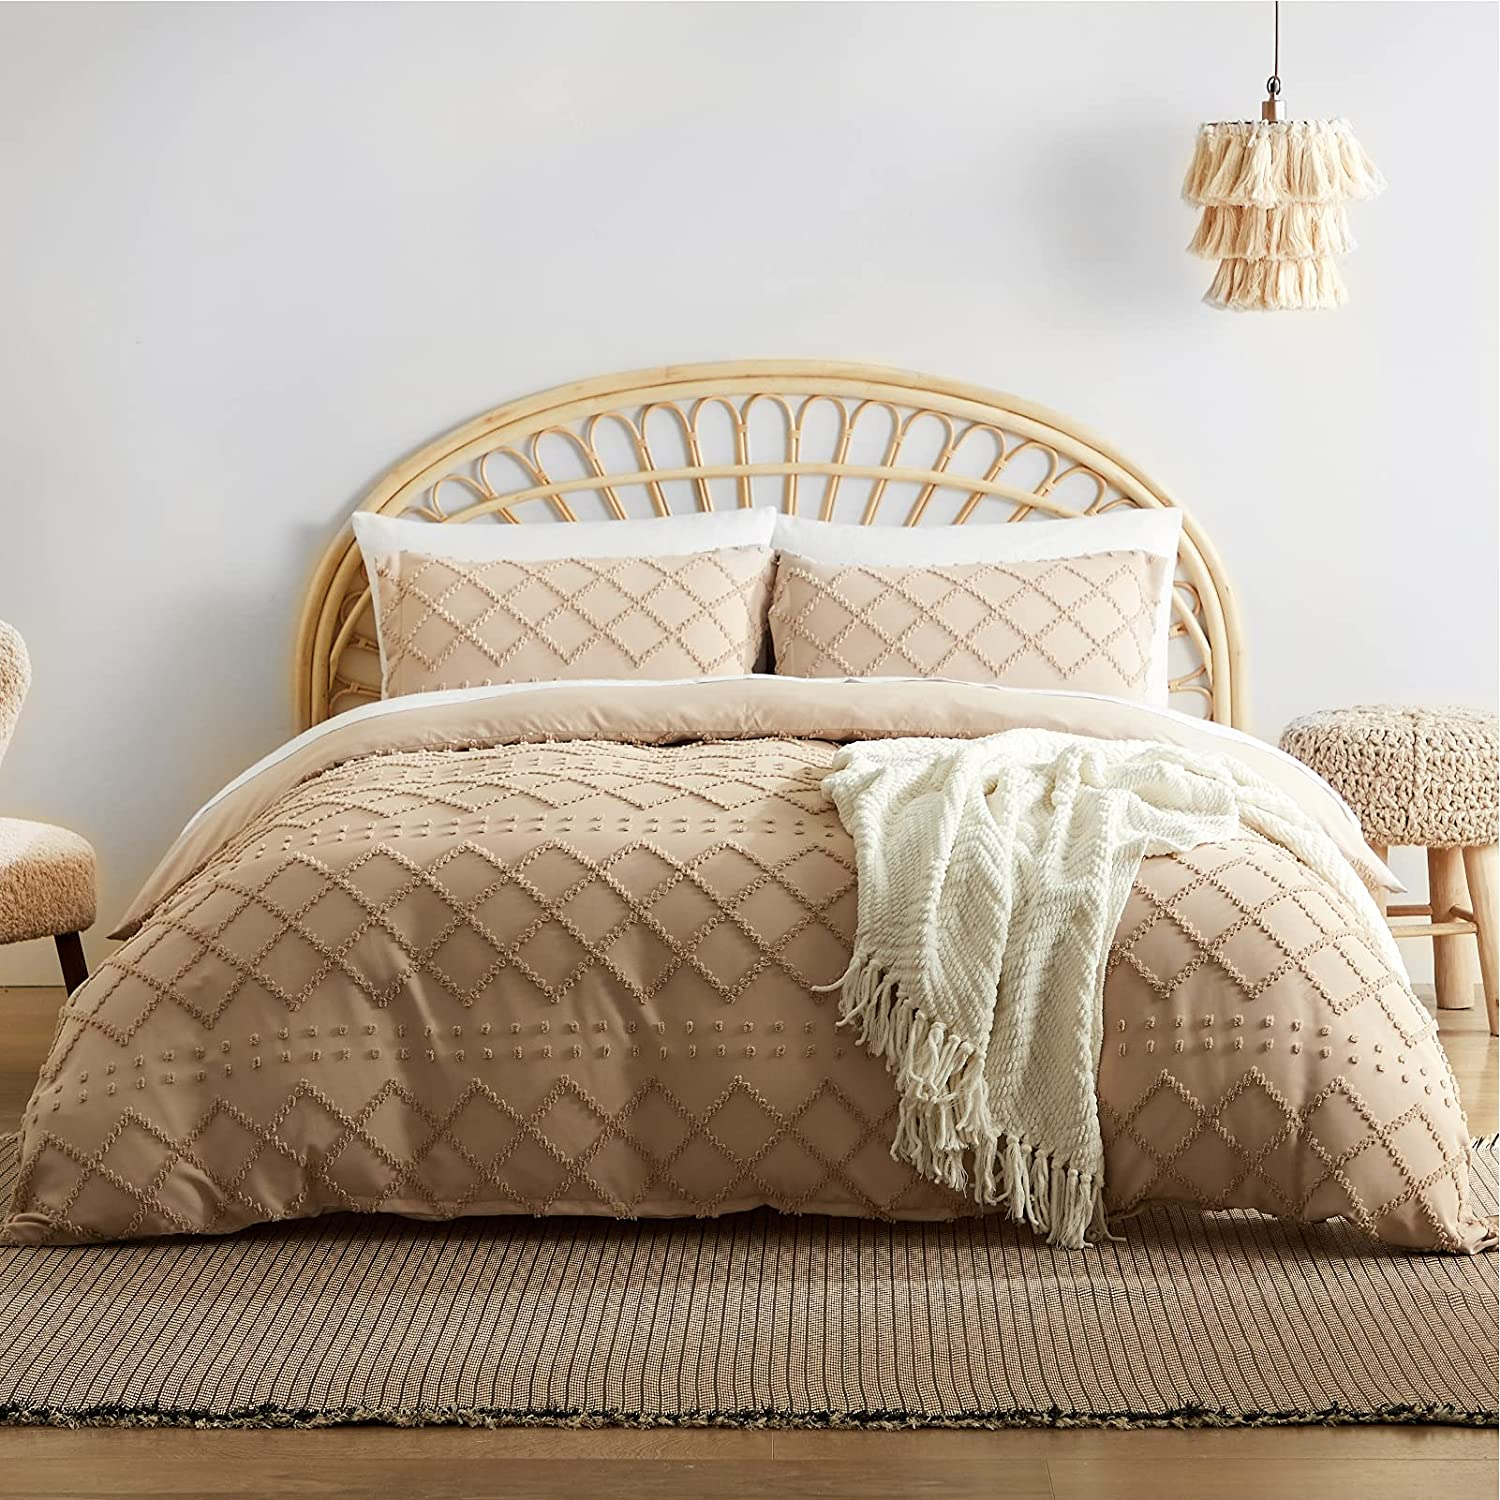 Bedsure Tufted Duvet Cover Set Queen Size, 3 Pieces Embroidery Shabby Chic Comforter Cover Set, Soft and Durable Bedding Set for All Seasons, Khaki